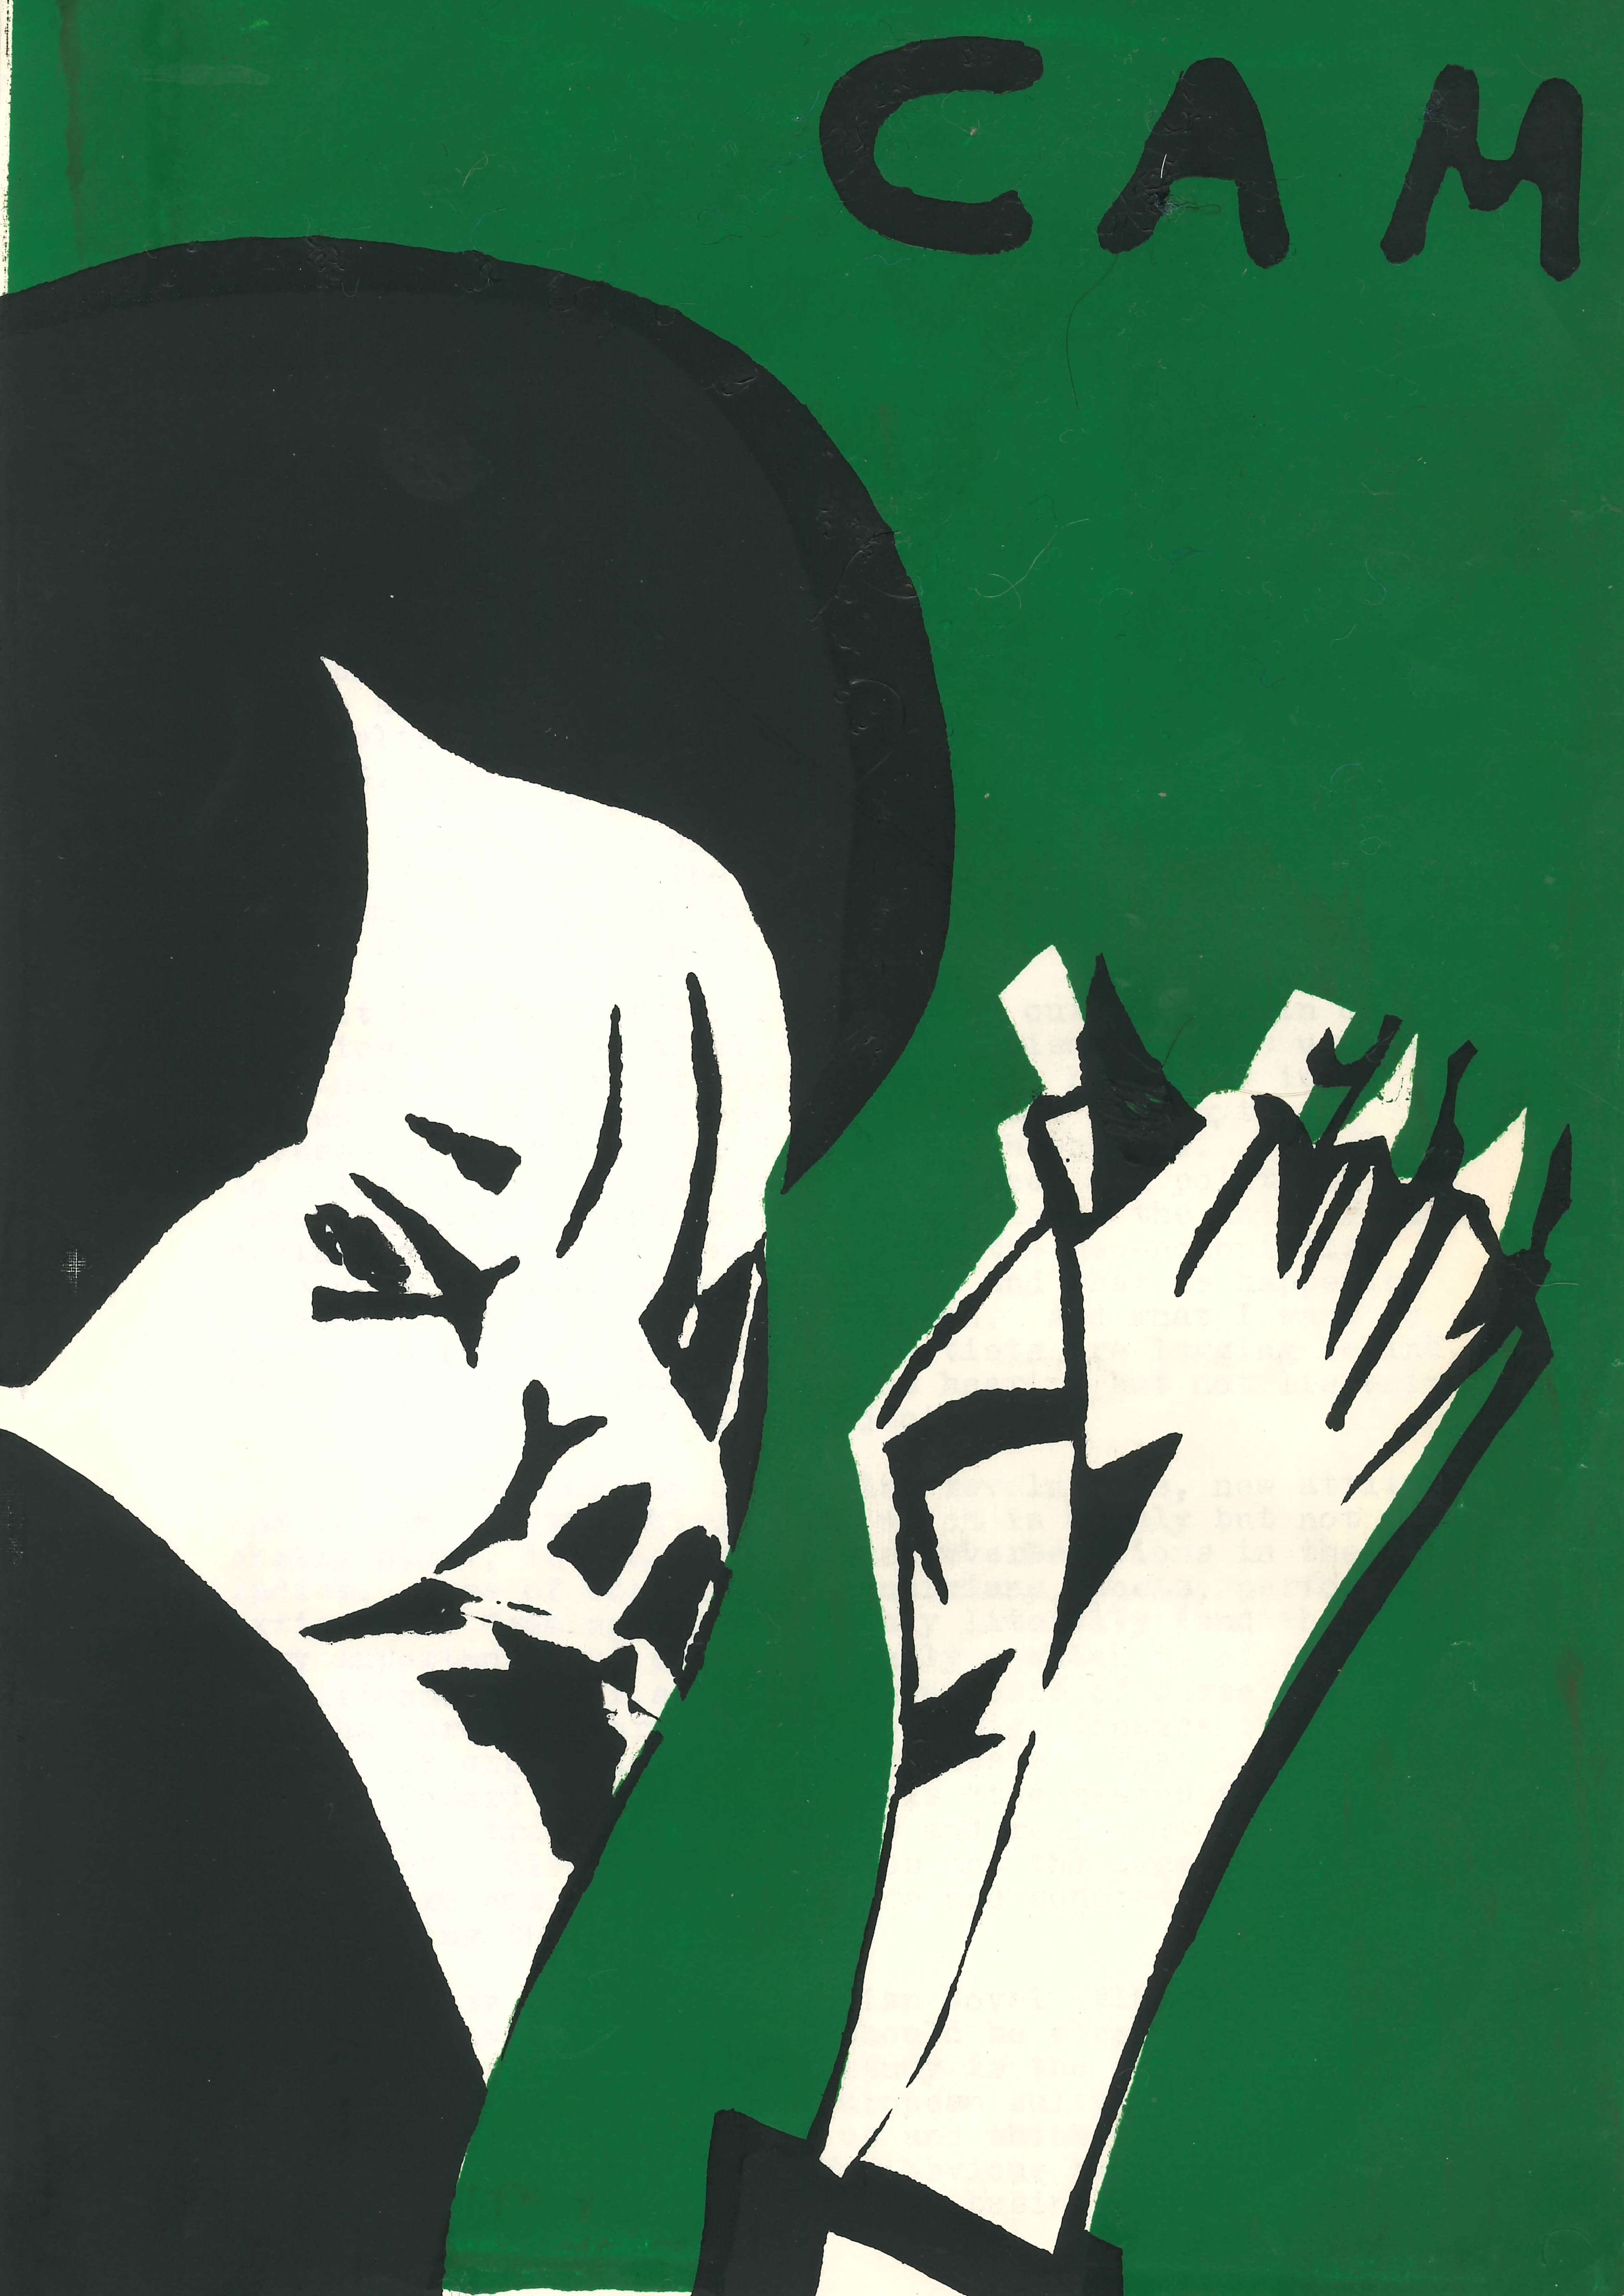 Newsletter cover in green, with a face and hands created in black and white as if to depict someone clapping. The 'CAM' acronym appears in black at the top of the page. The cover is painted using stencils or similar.